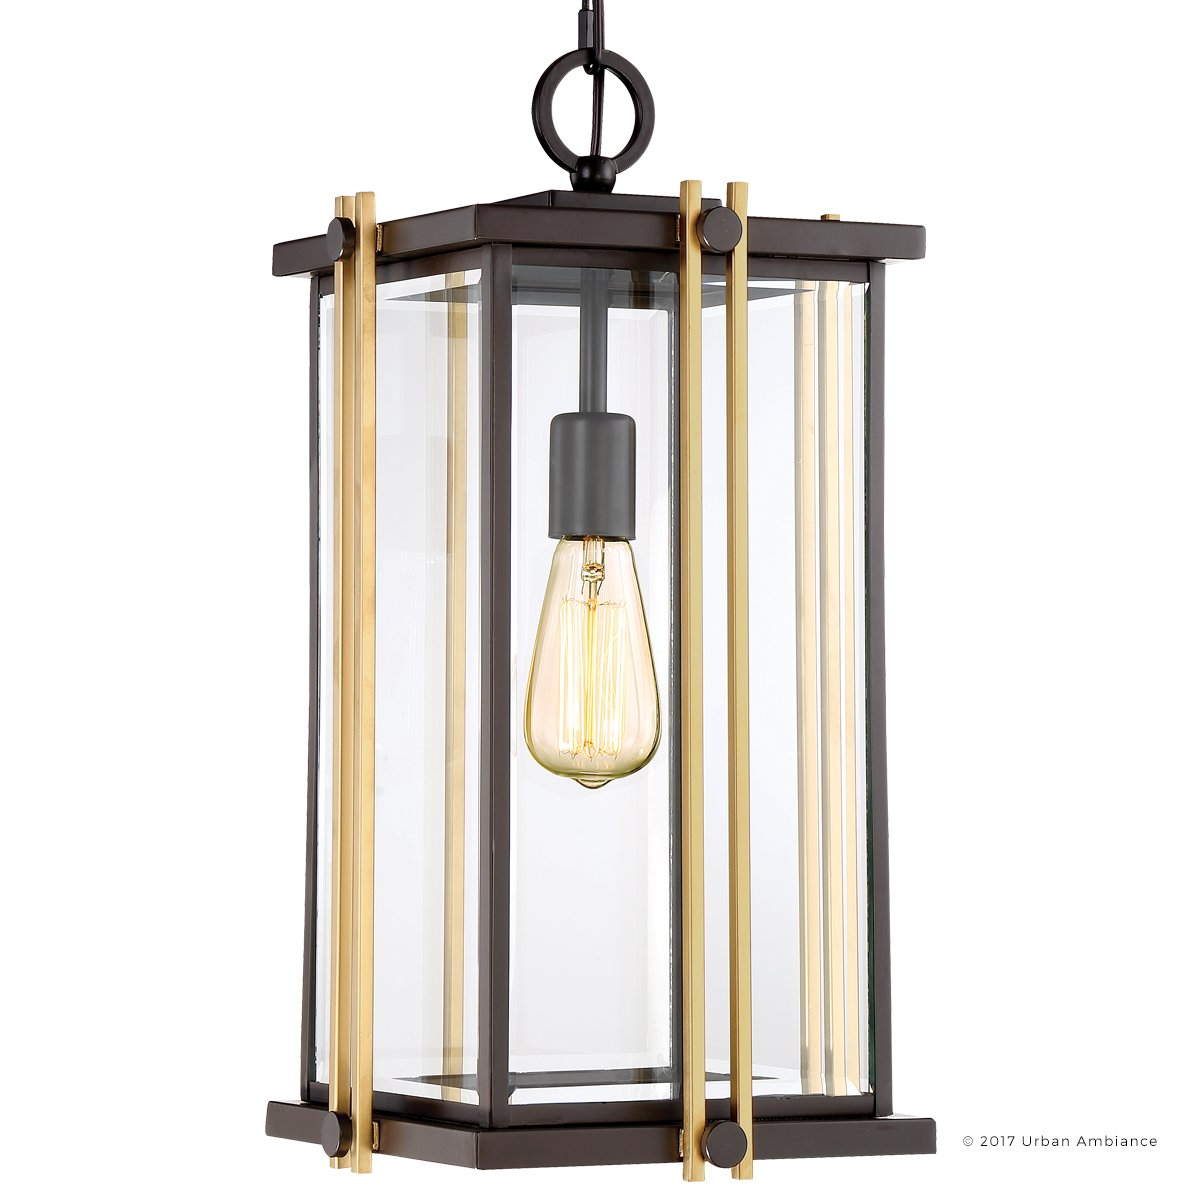 Luxury Craftsman Outdoor Pendant Light, Large Size: 20''H x 10''W, with Craftsman Style Elements, Gold Trimmed Design, Elegant Estate Bronze Finish and Beveled Glass, UQL1074 by Urban Ambiance